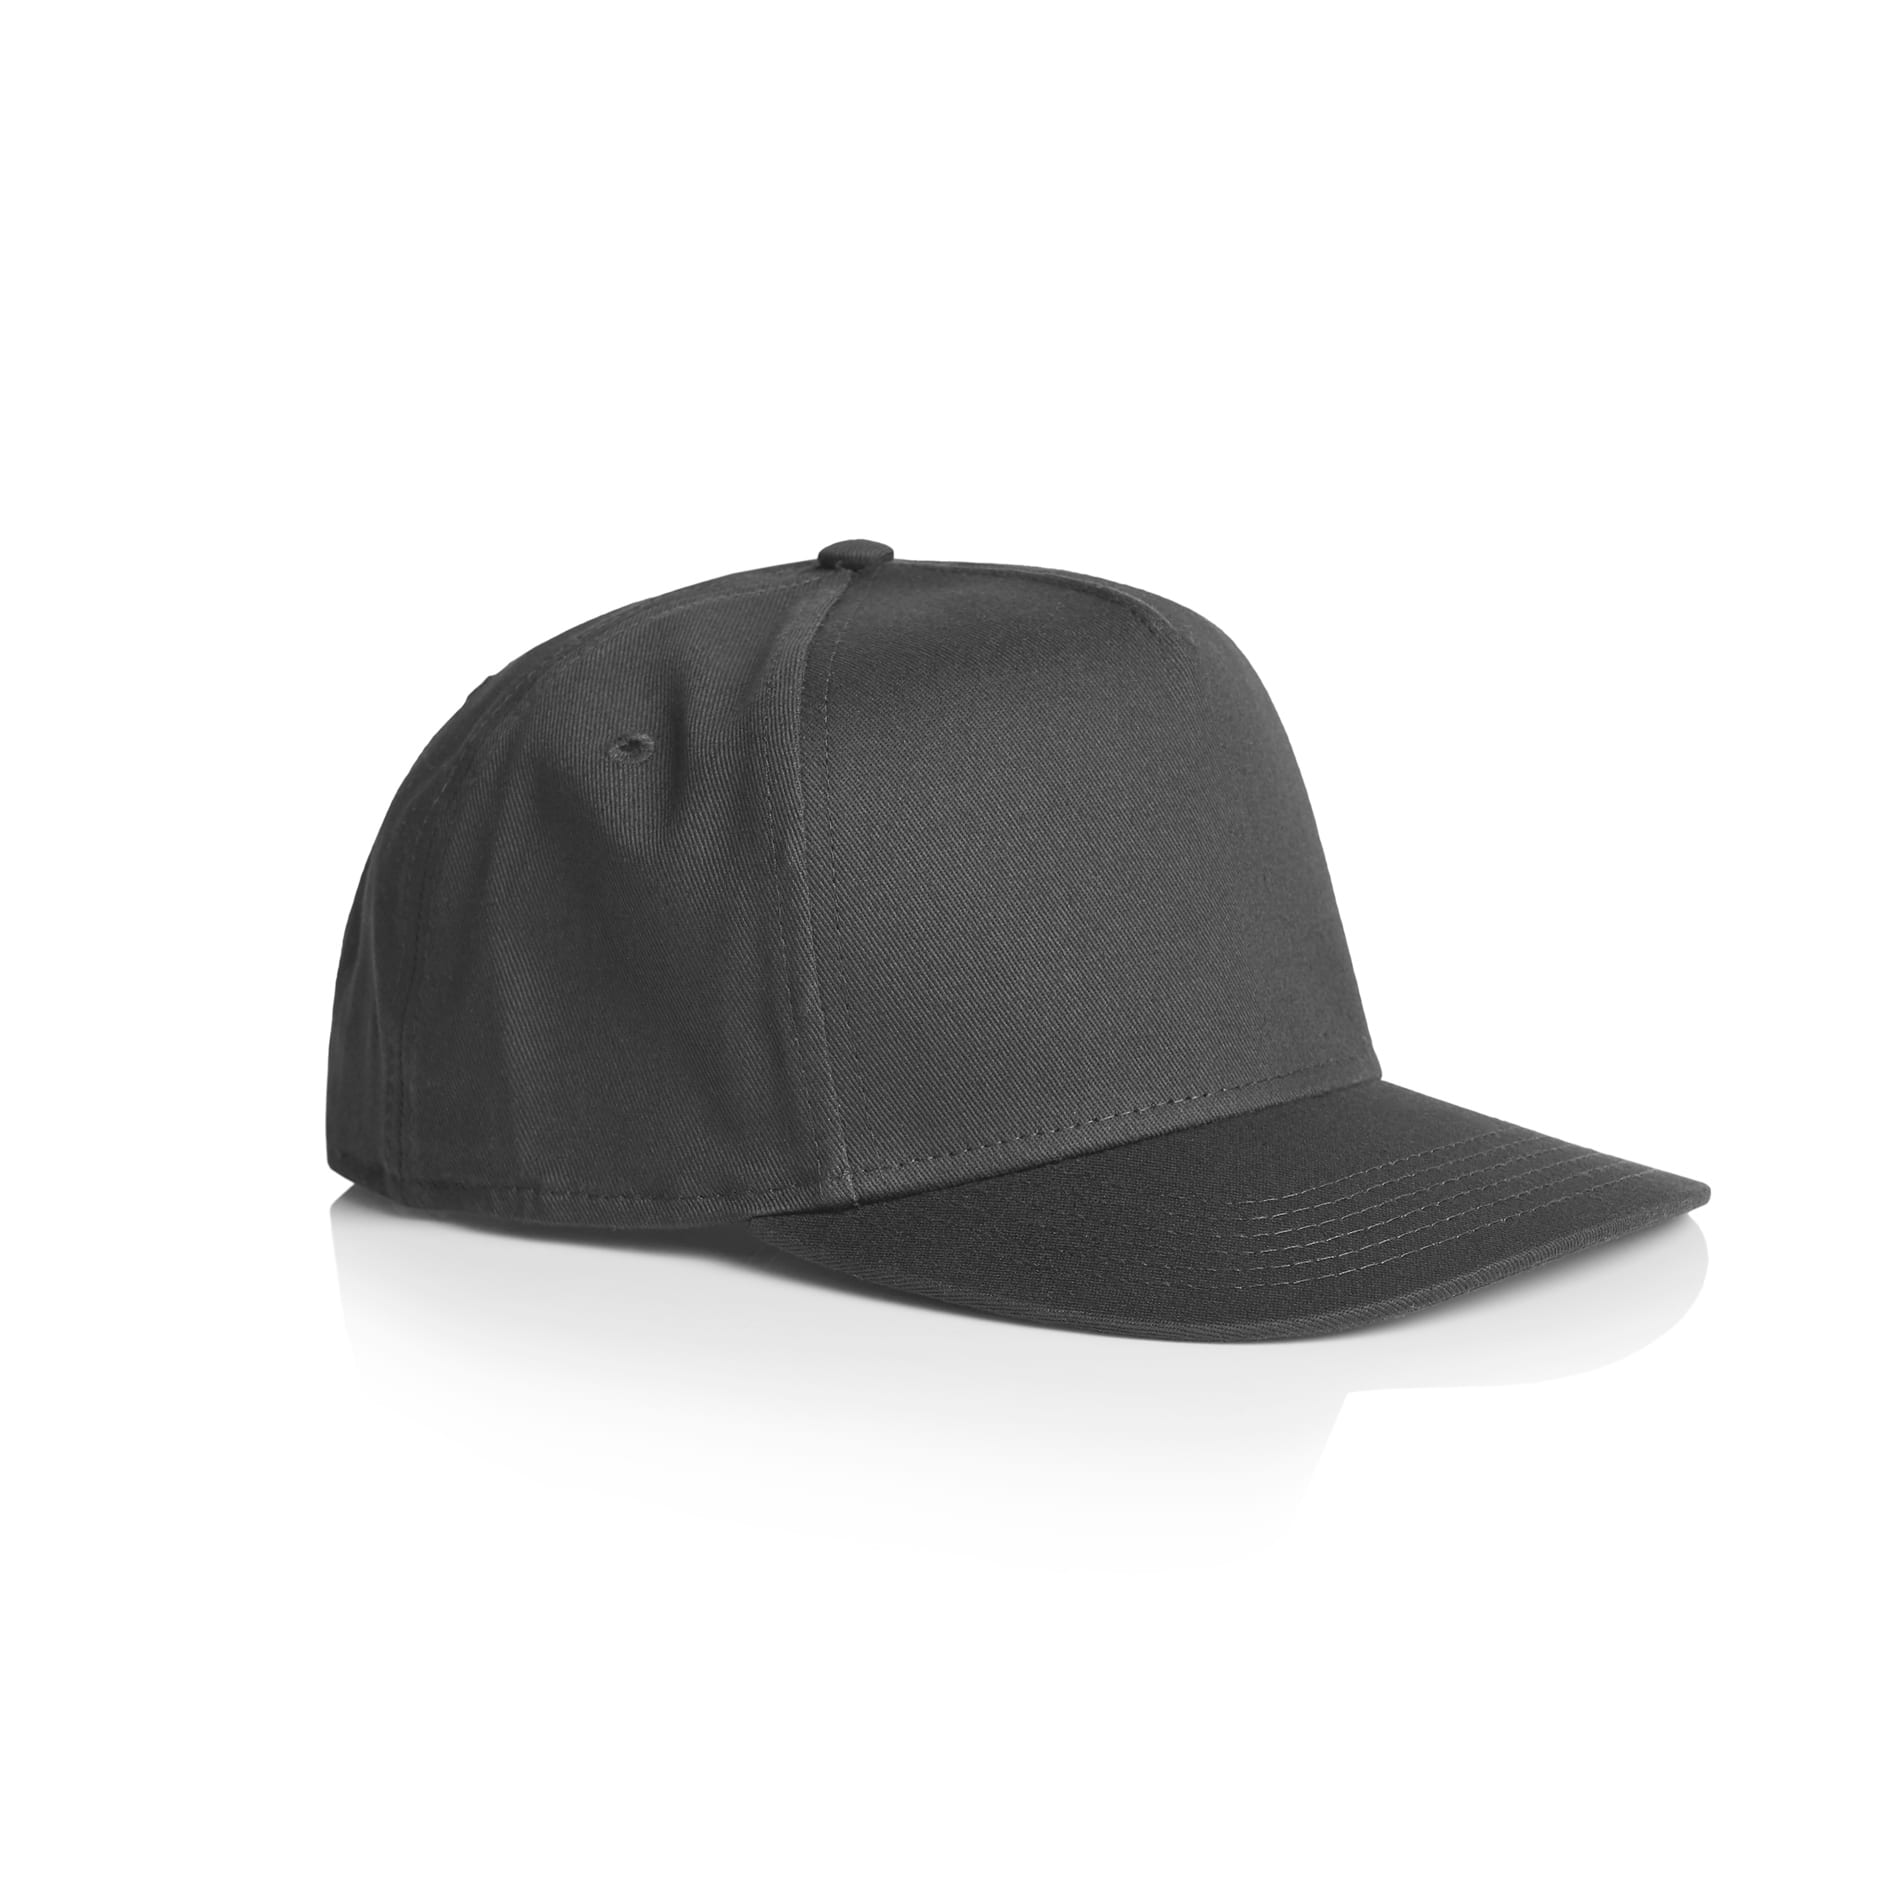 AS 1109 Billy Cap